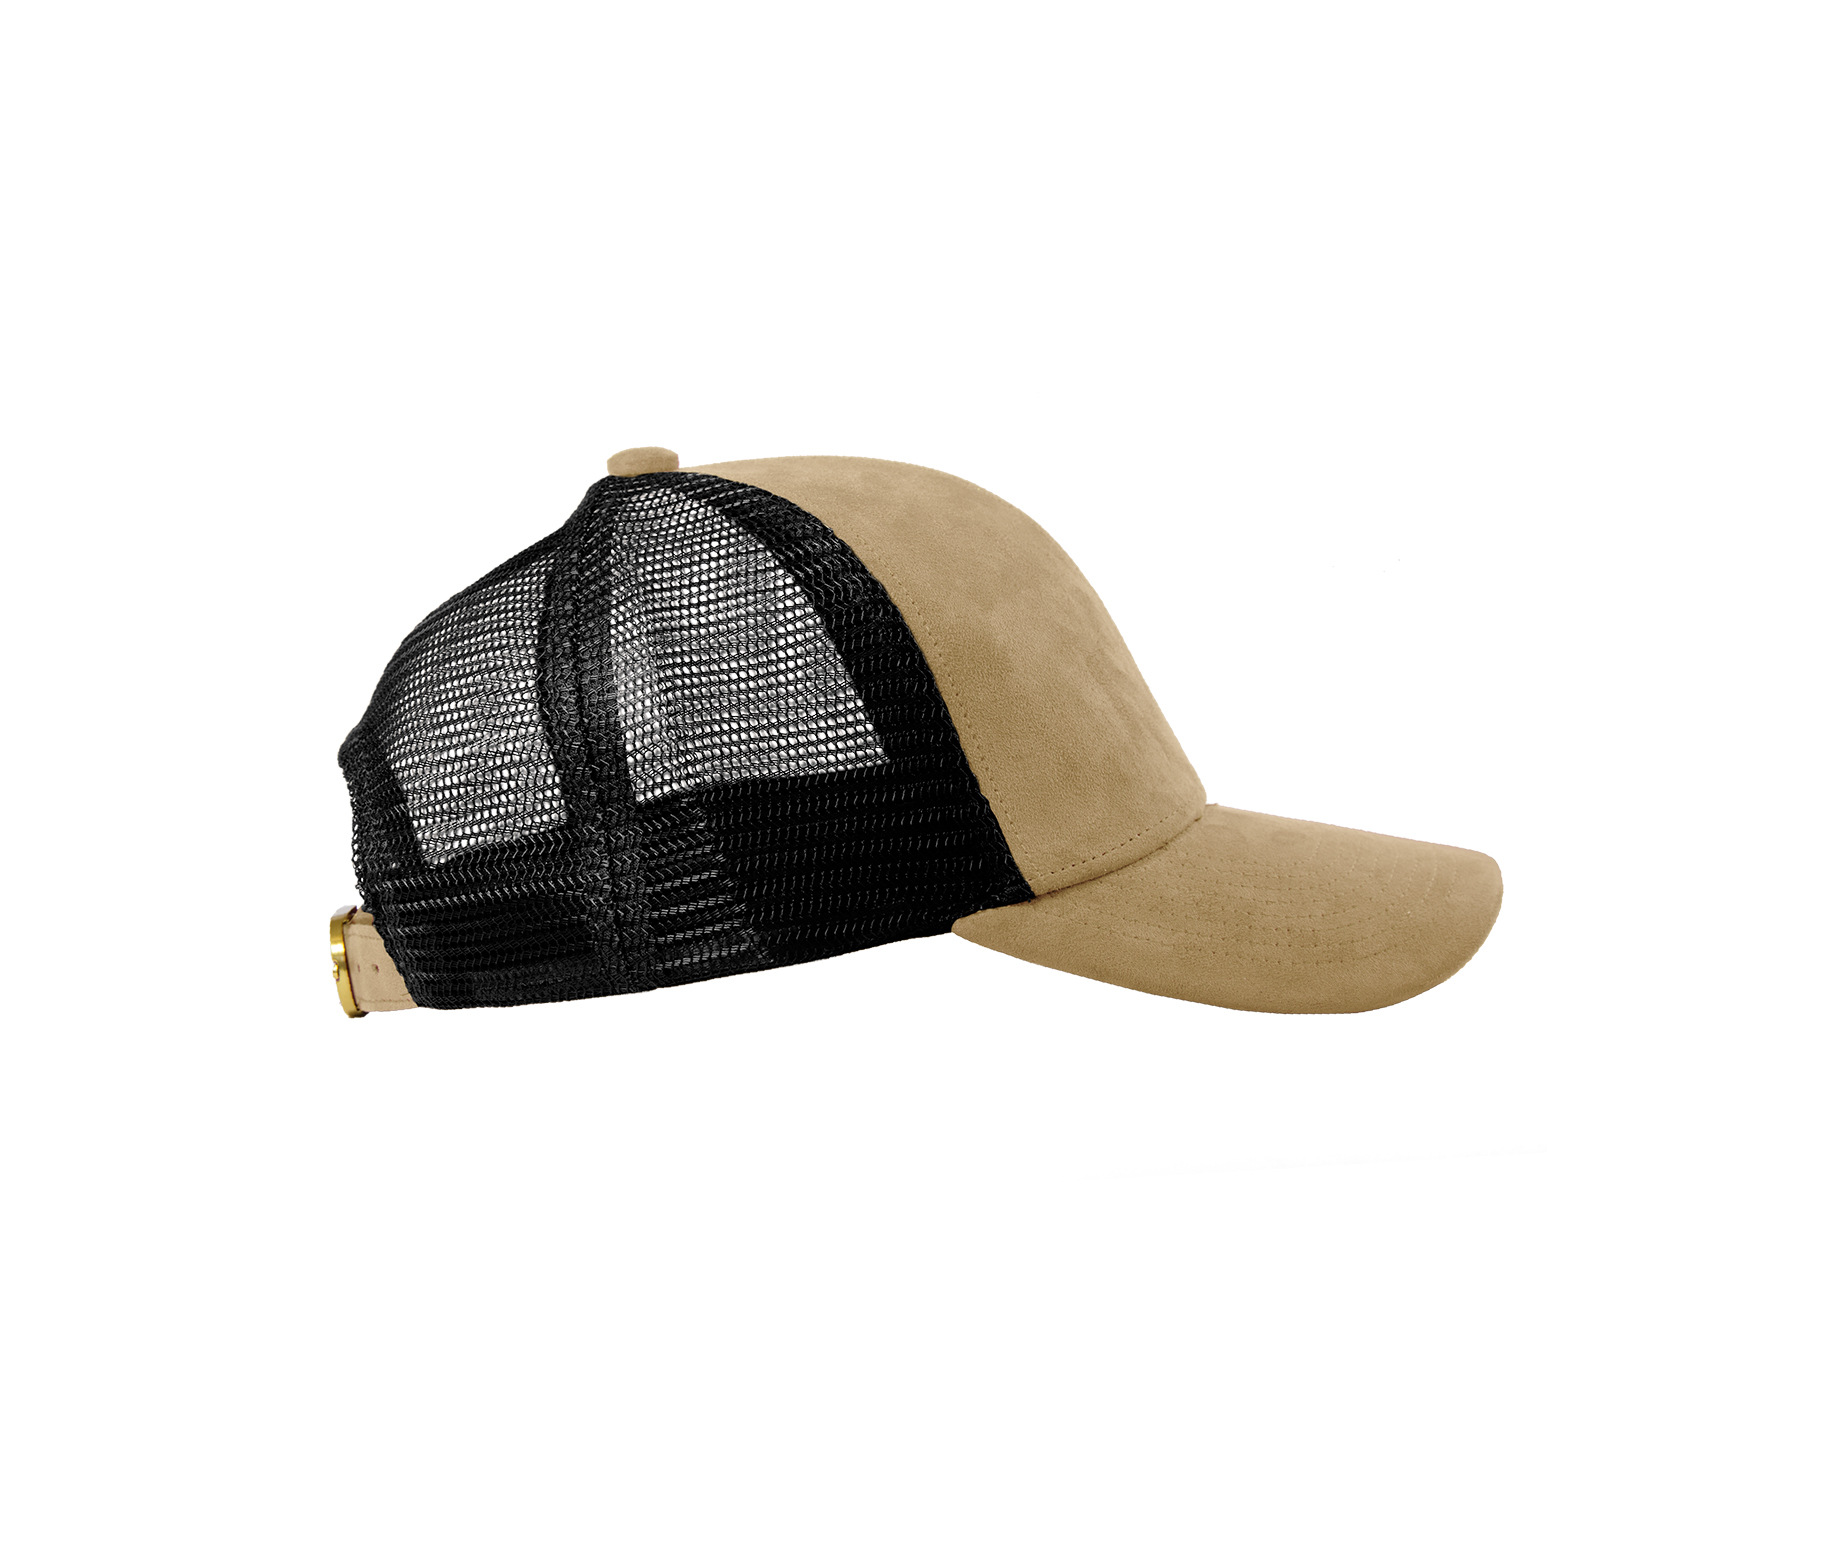 TRUCKER CAP SAND SUEDE SIDE